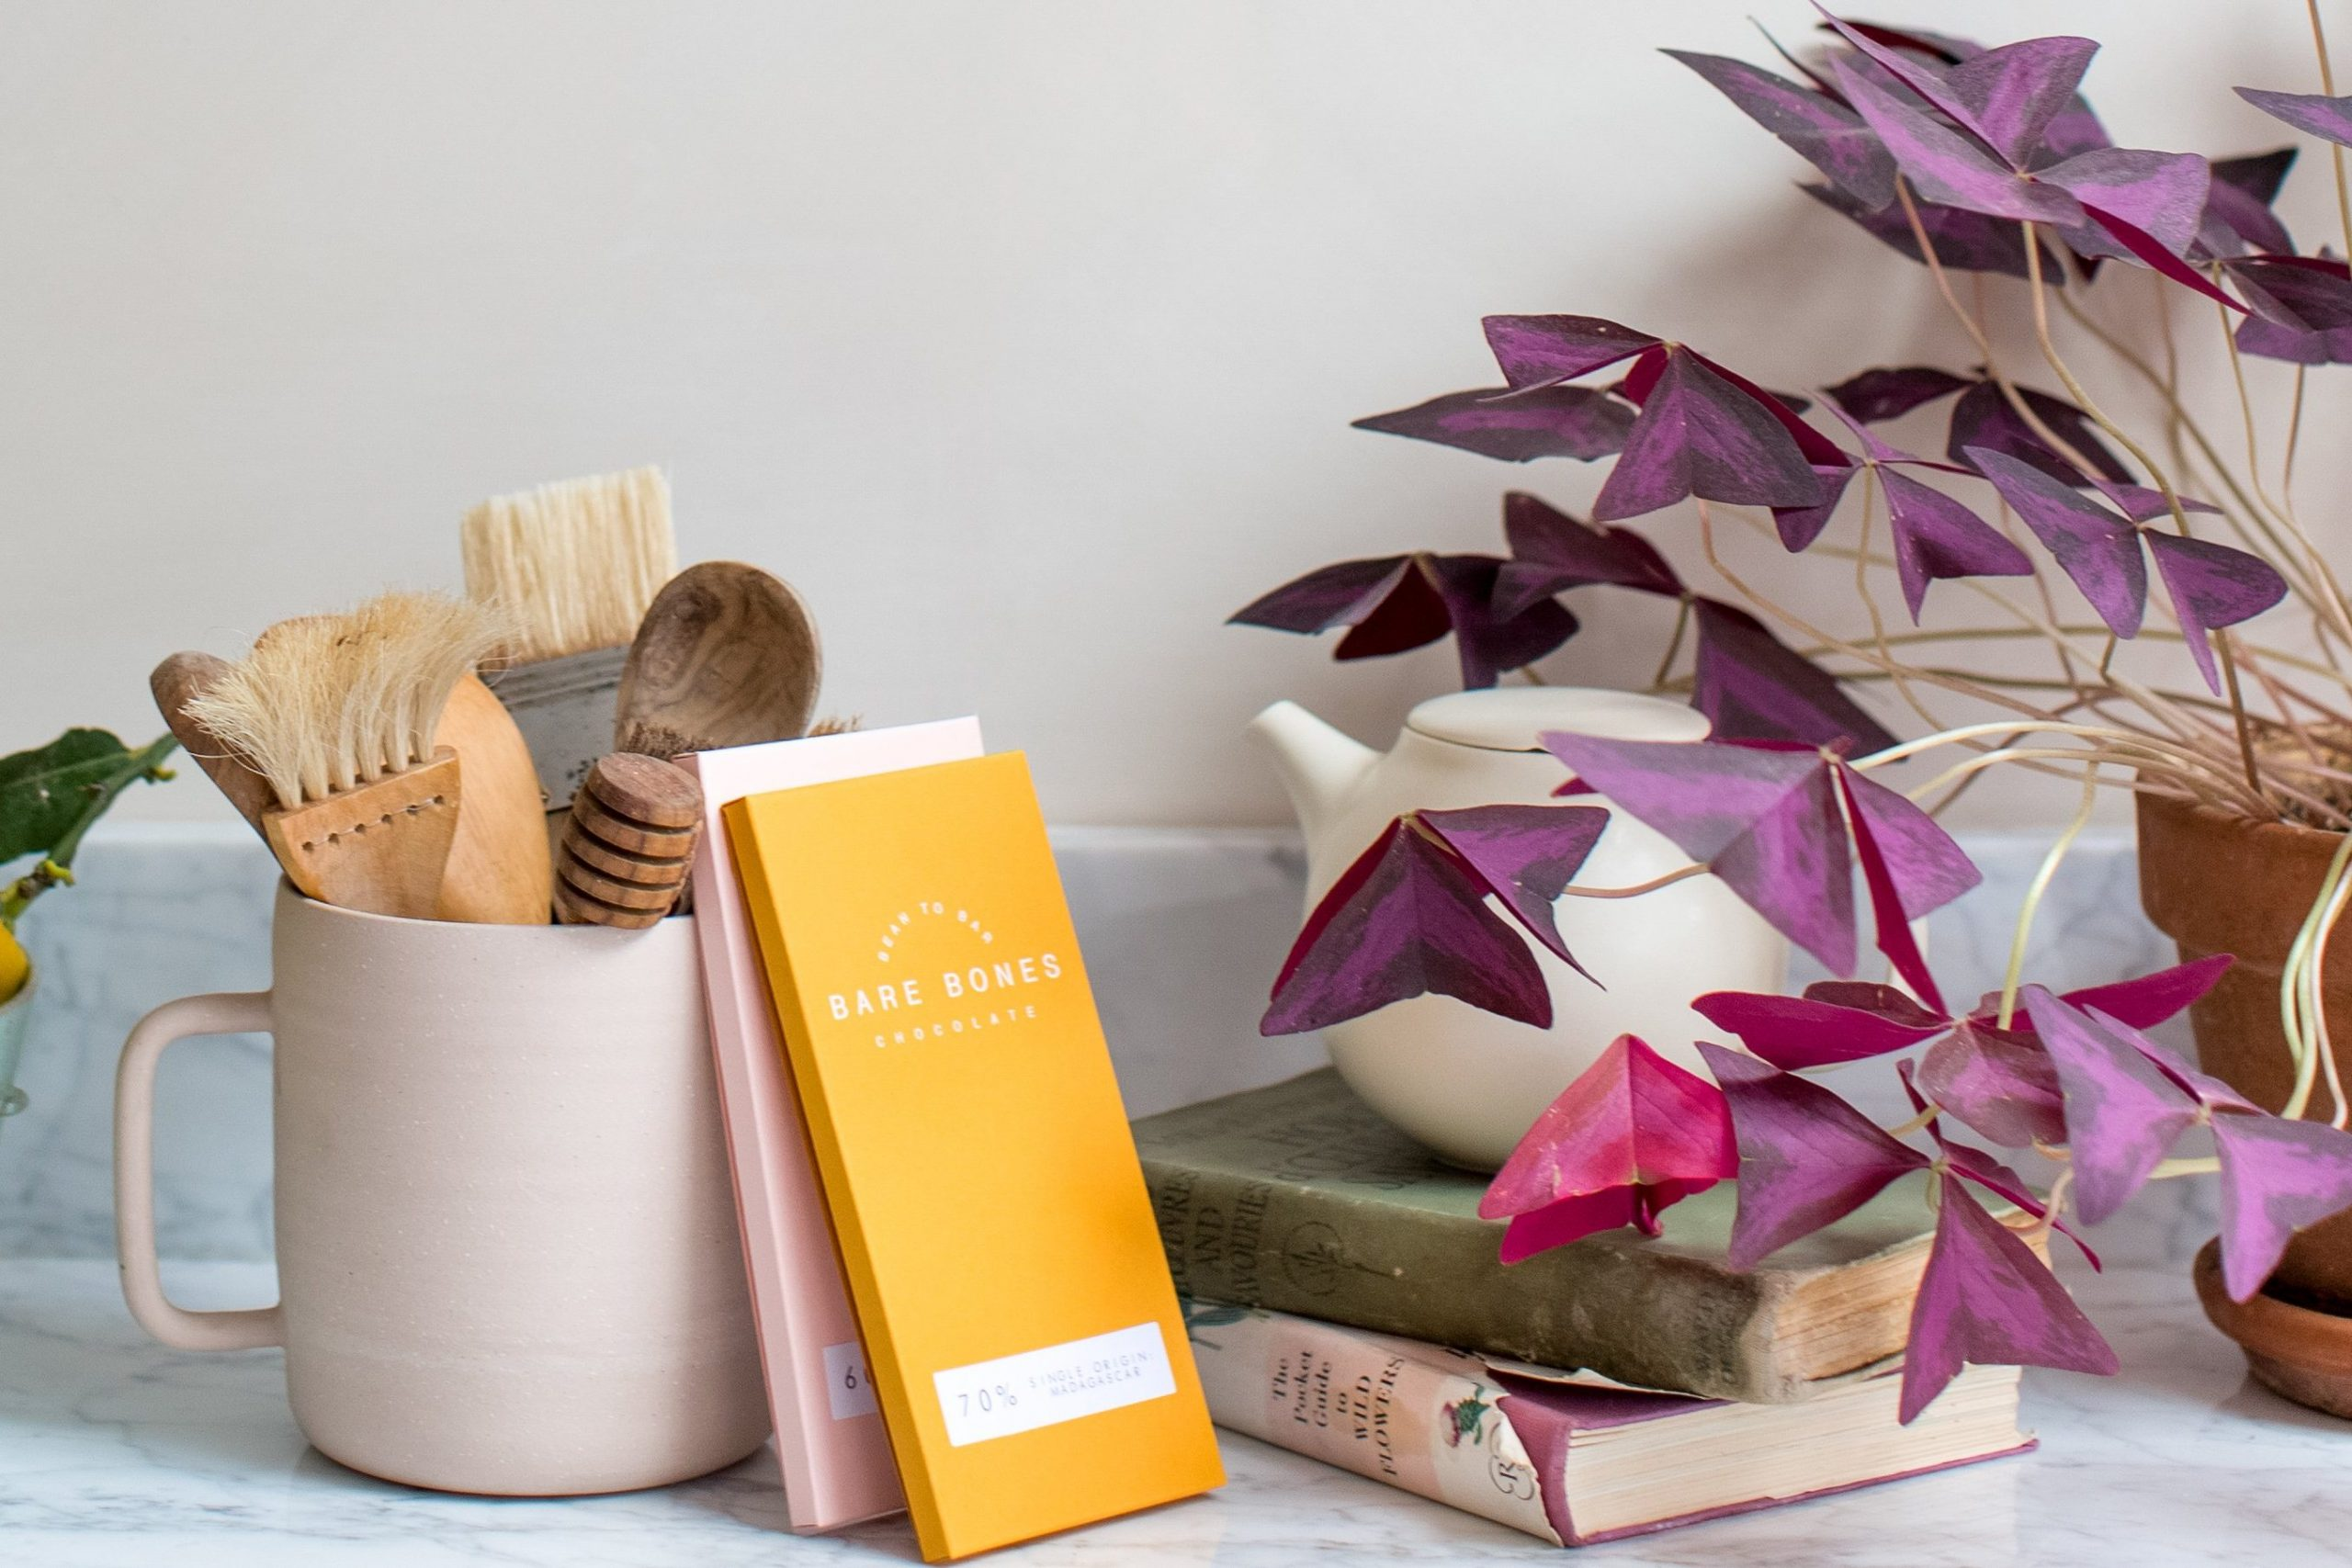 pink mug with brushes in, two chocolate bars wrapped in yellow and pink, books, a tea pot and plant on a kitchen counter